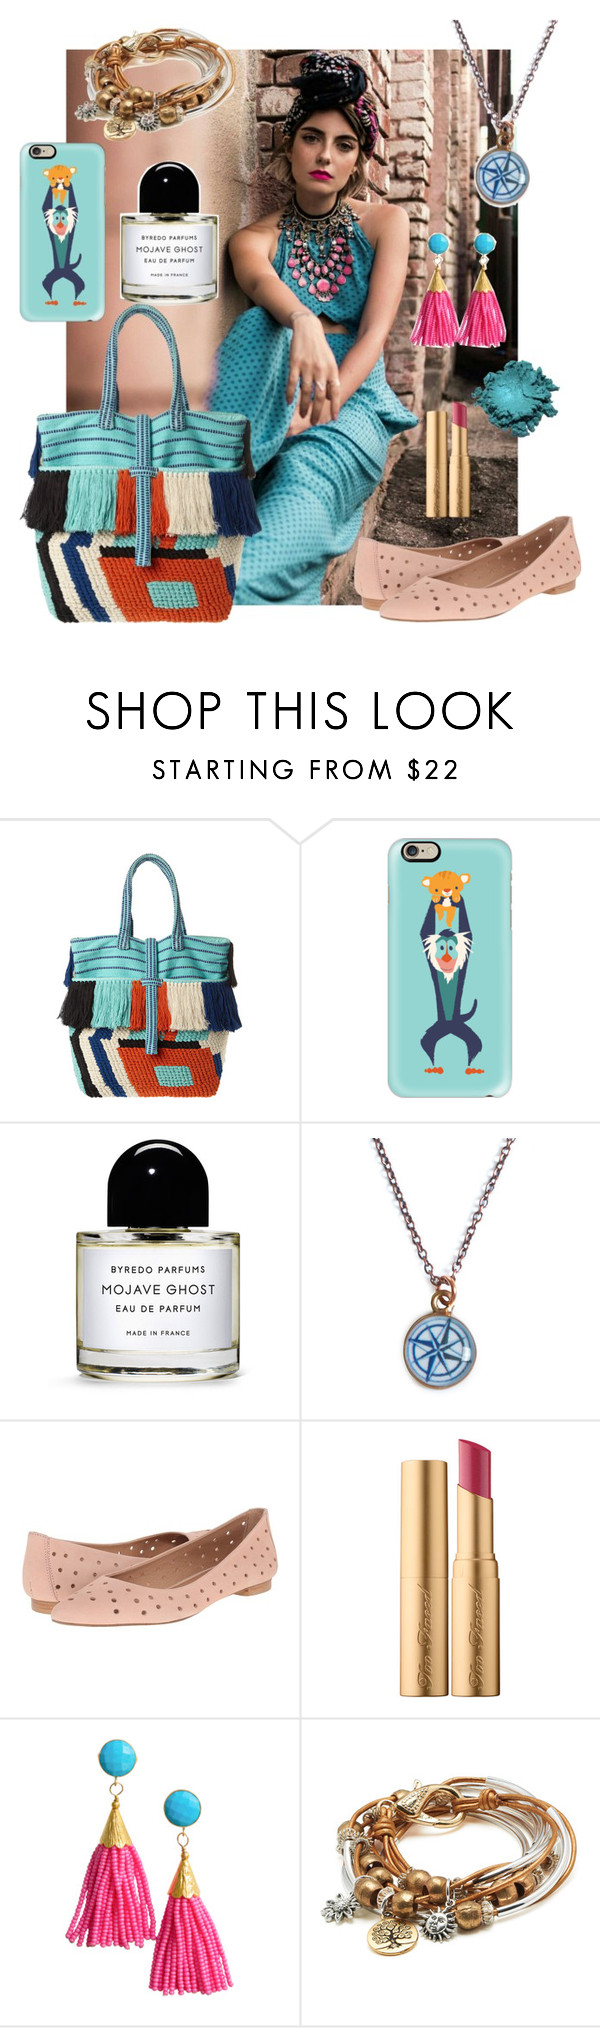 """""""Excess"""" by maritabirken ❤ liked on Polyvore featuring Diego Binetti, Casetify, Byredo, Chart Metal Works, Corso Como, Too Faced Cosmetics and Lizzy James"""